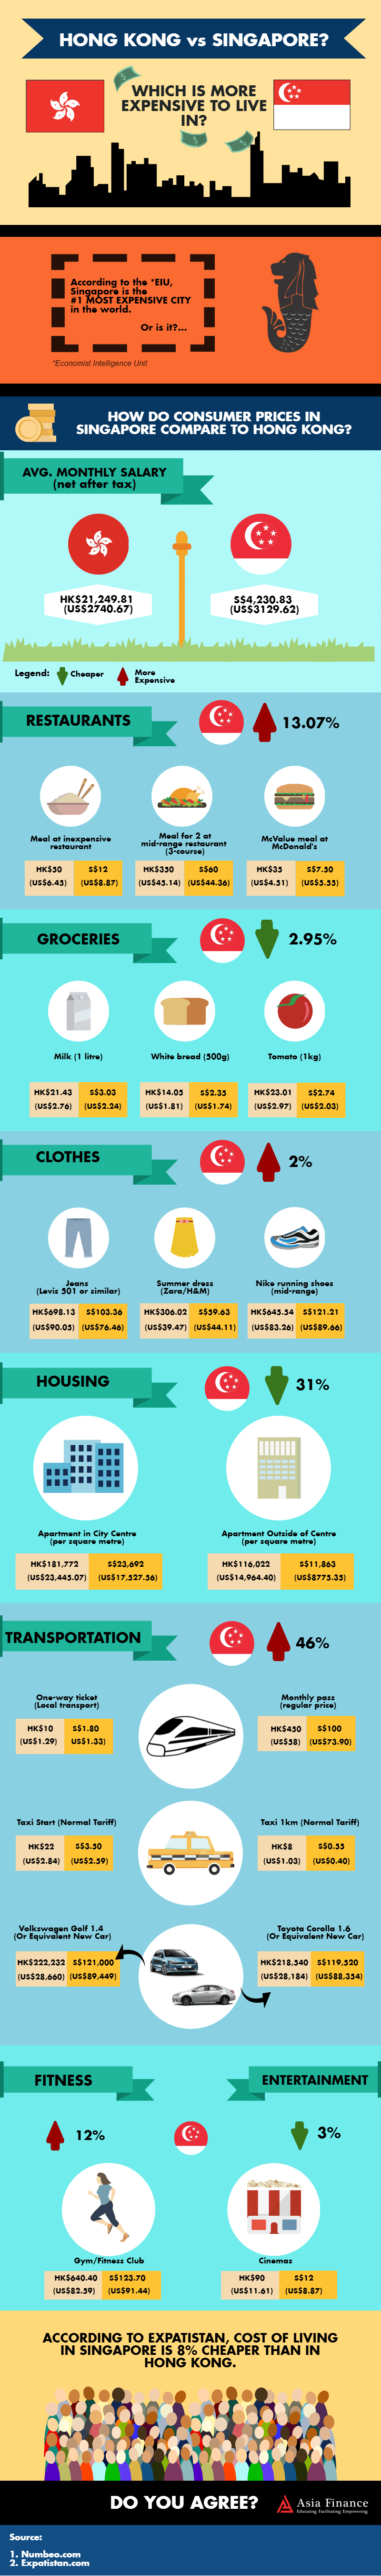 Singapore vs Hong Kong: Which Is More Expensive To Live In?